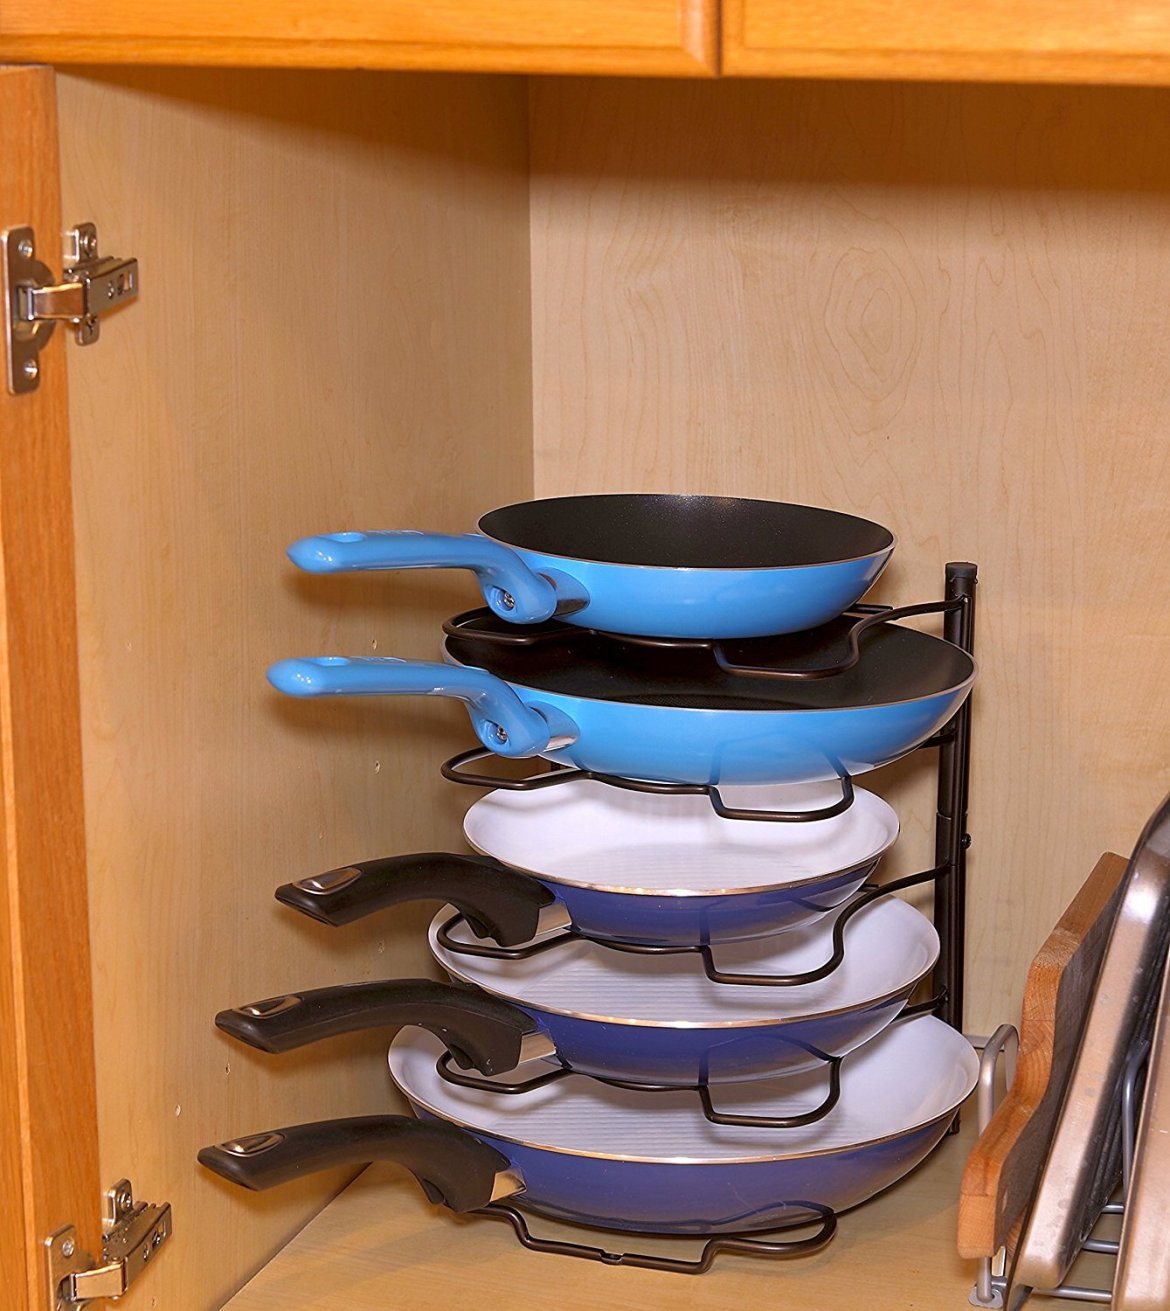 Kitchen Organization Amazon: 8 Things From Amazon That'll Organize Your Kitchen For